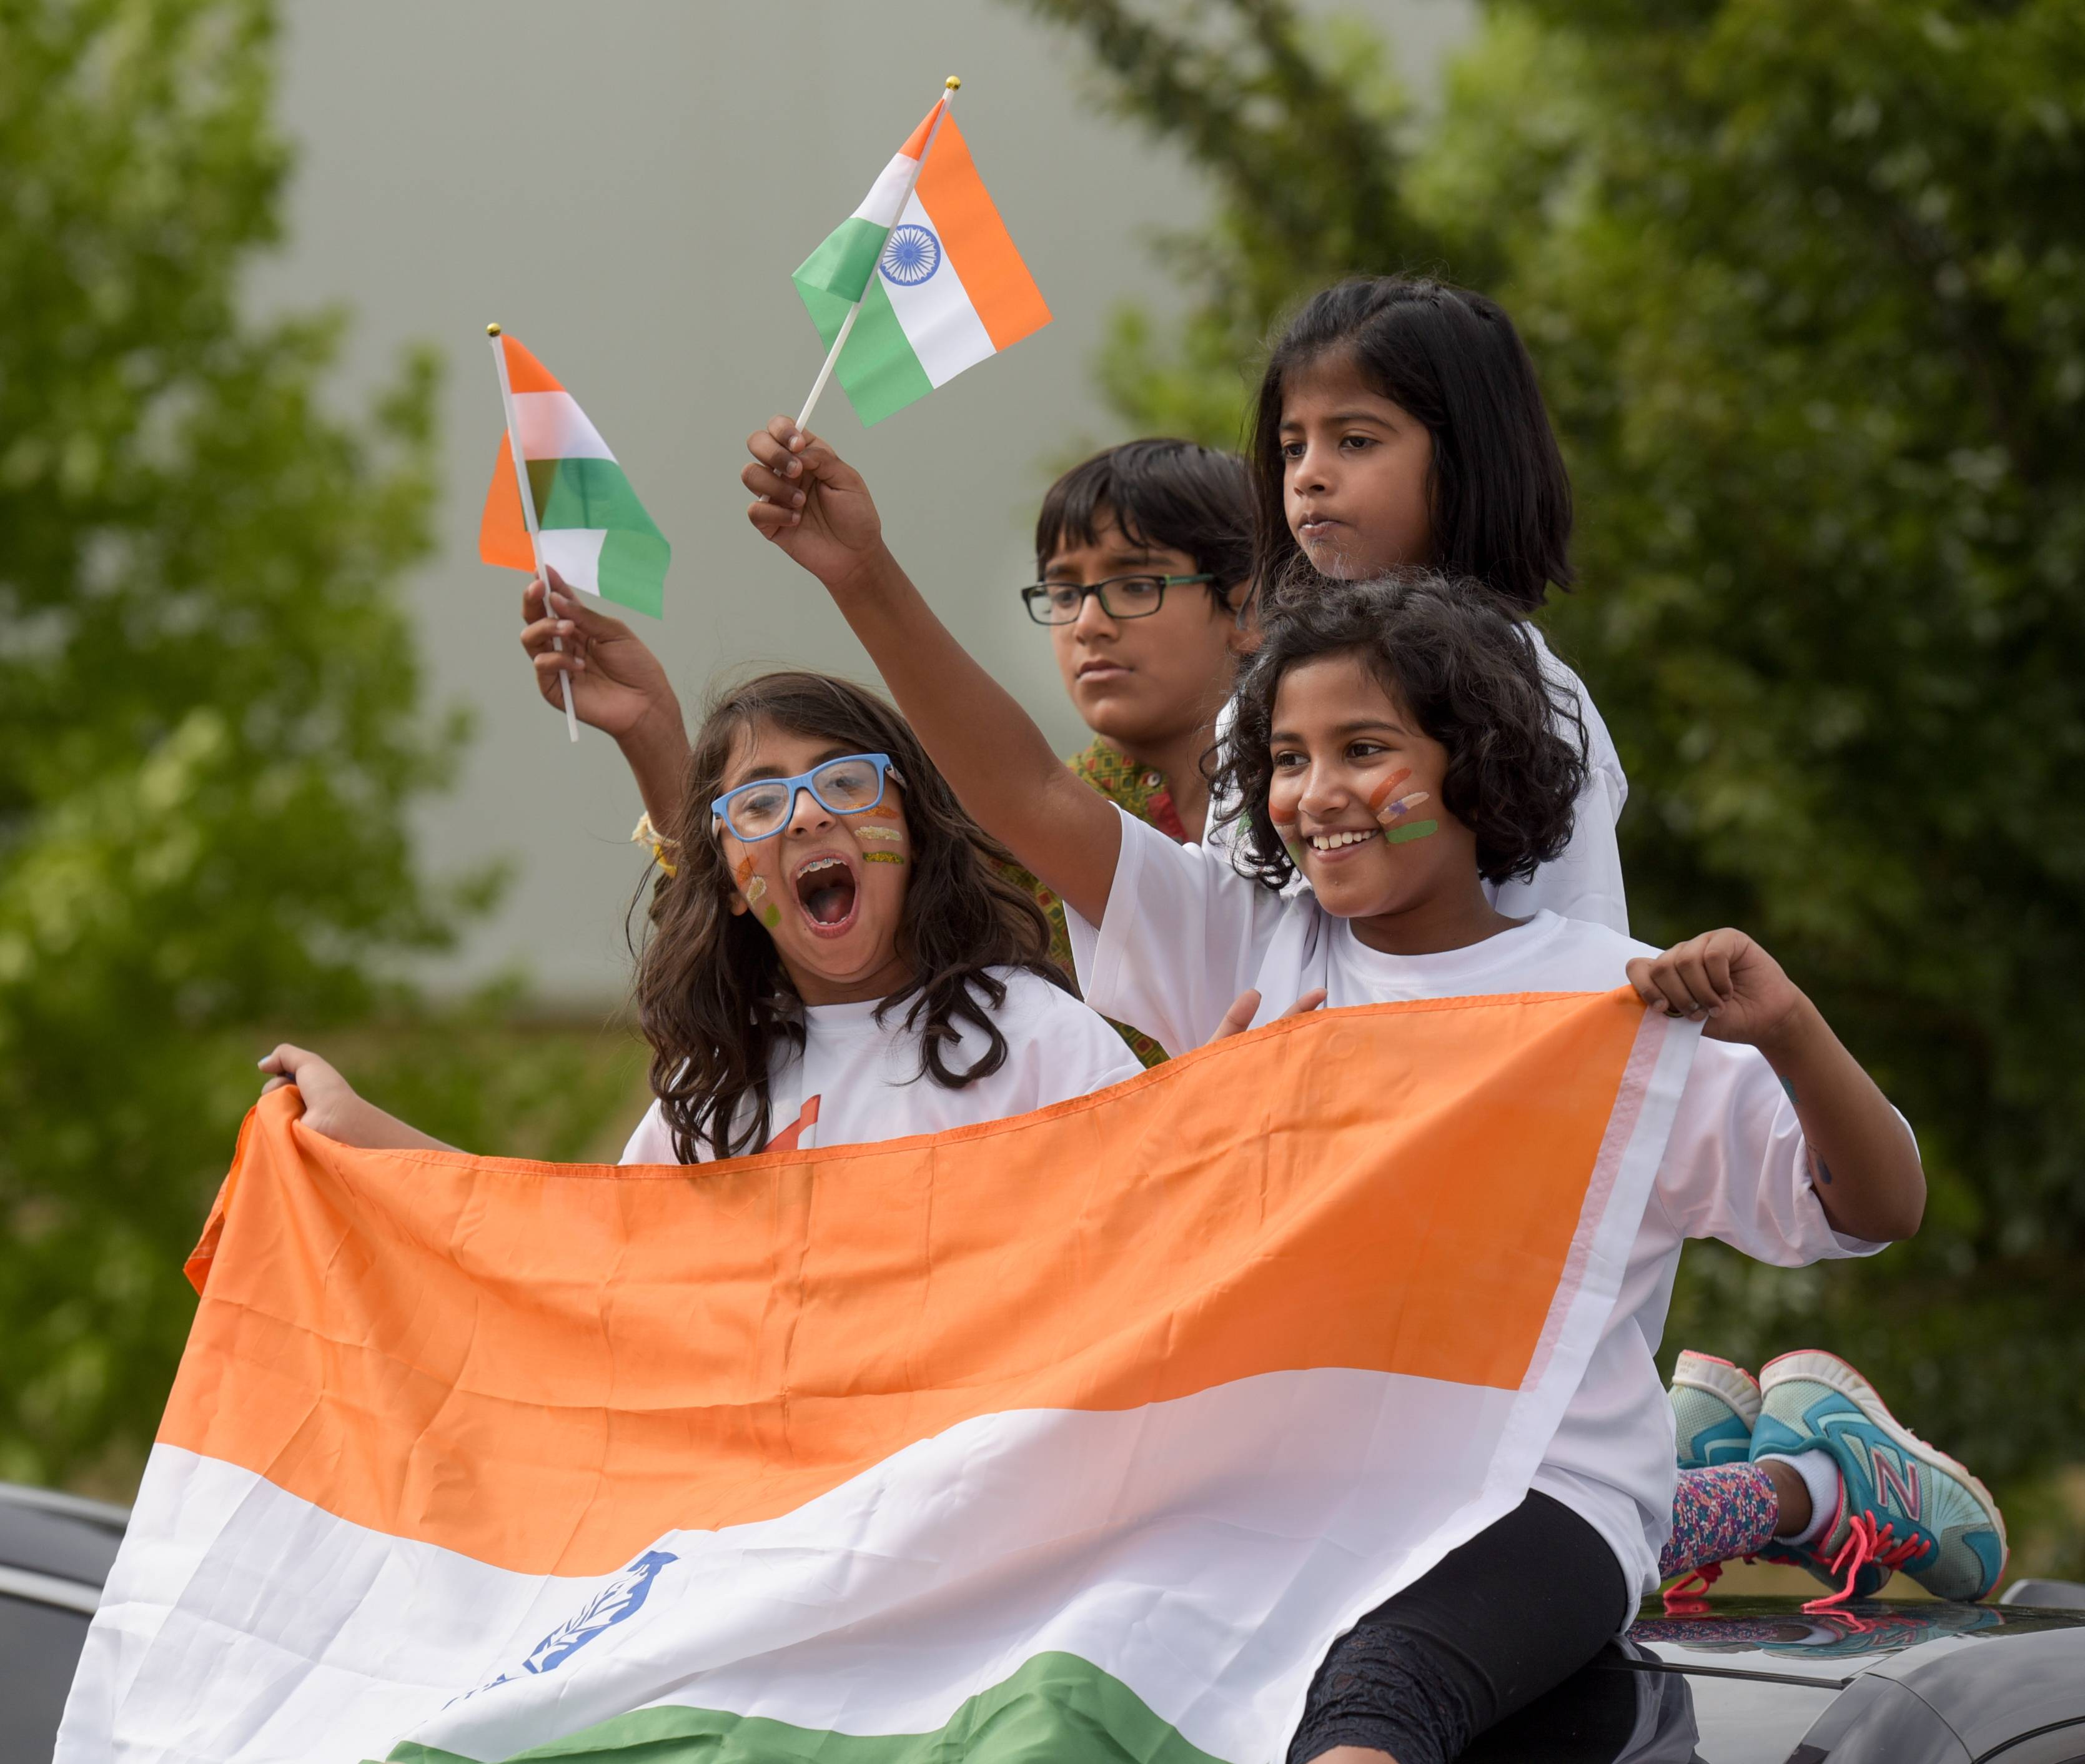 Arjun Mody, Dhiti Boggaram, Sanah Wagle and Aadya Boggaram cheer Sunday while watching the third annual India Day Parade and Festival in Naperville.